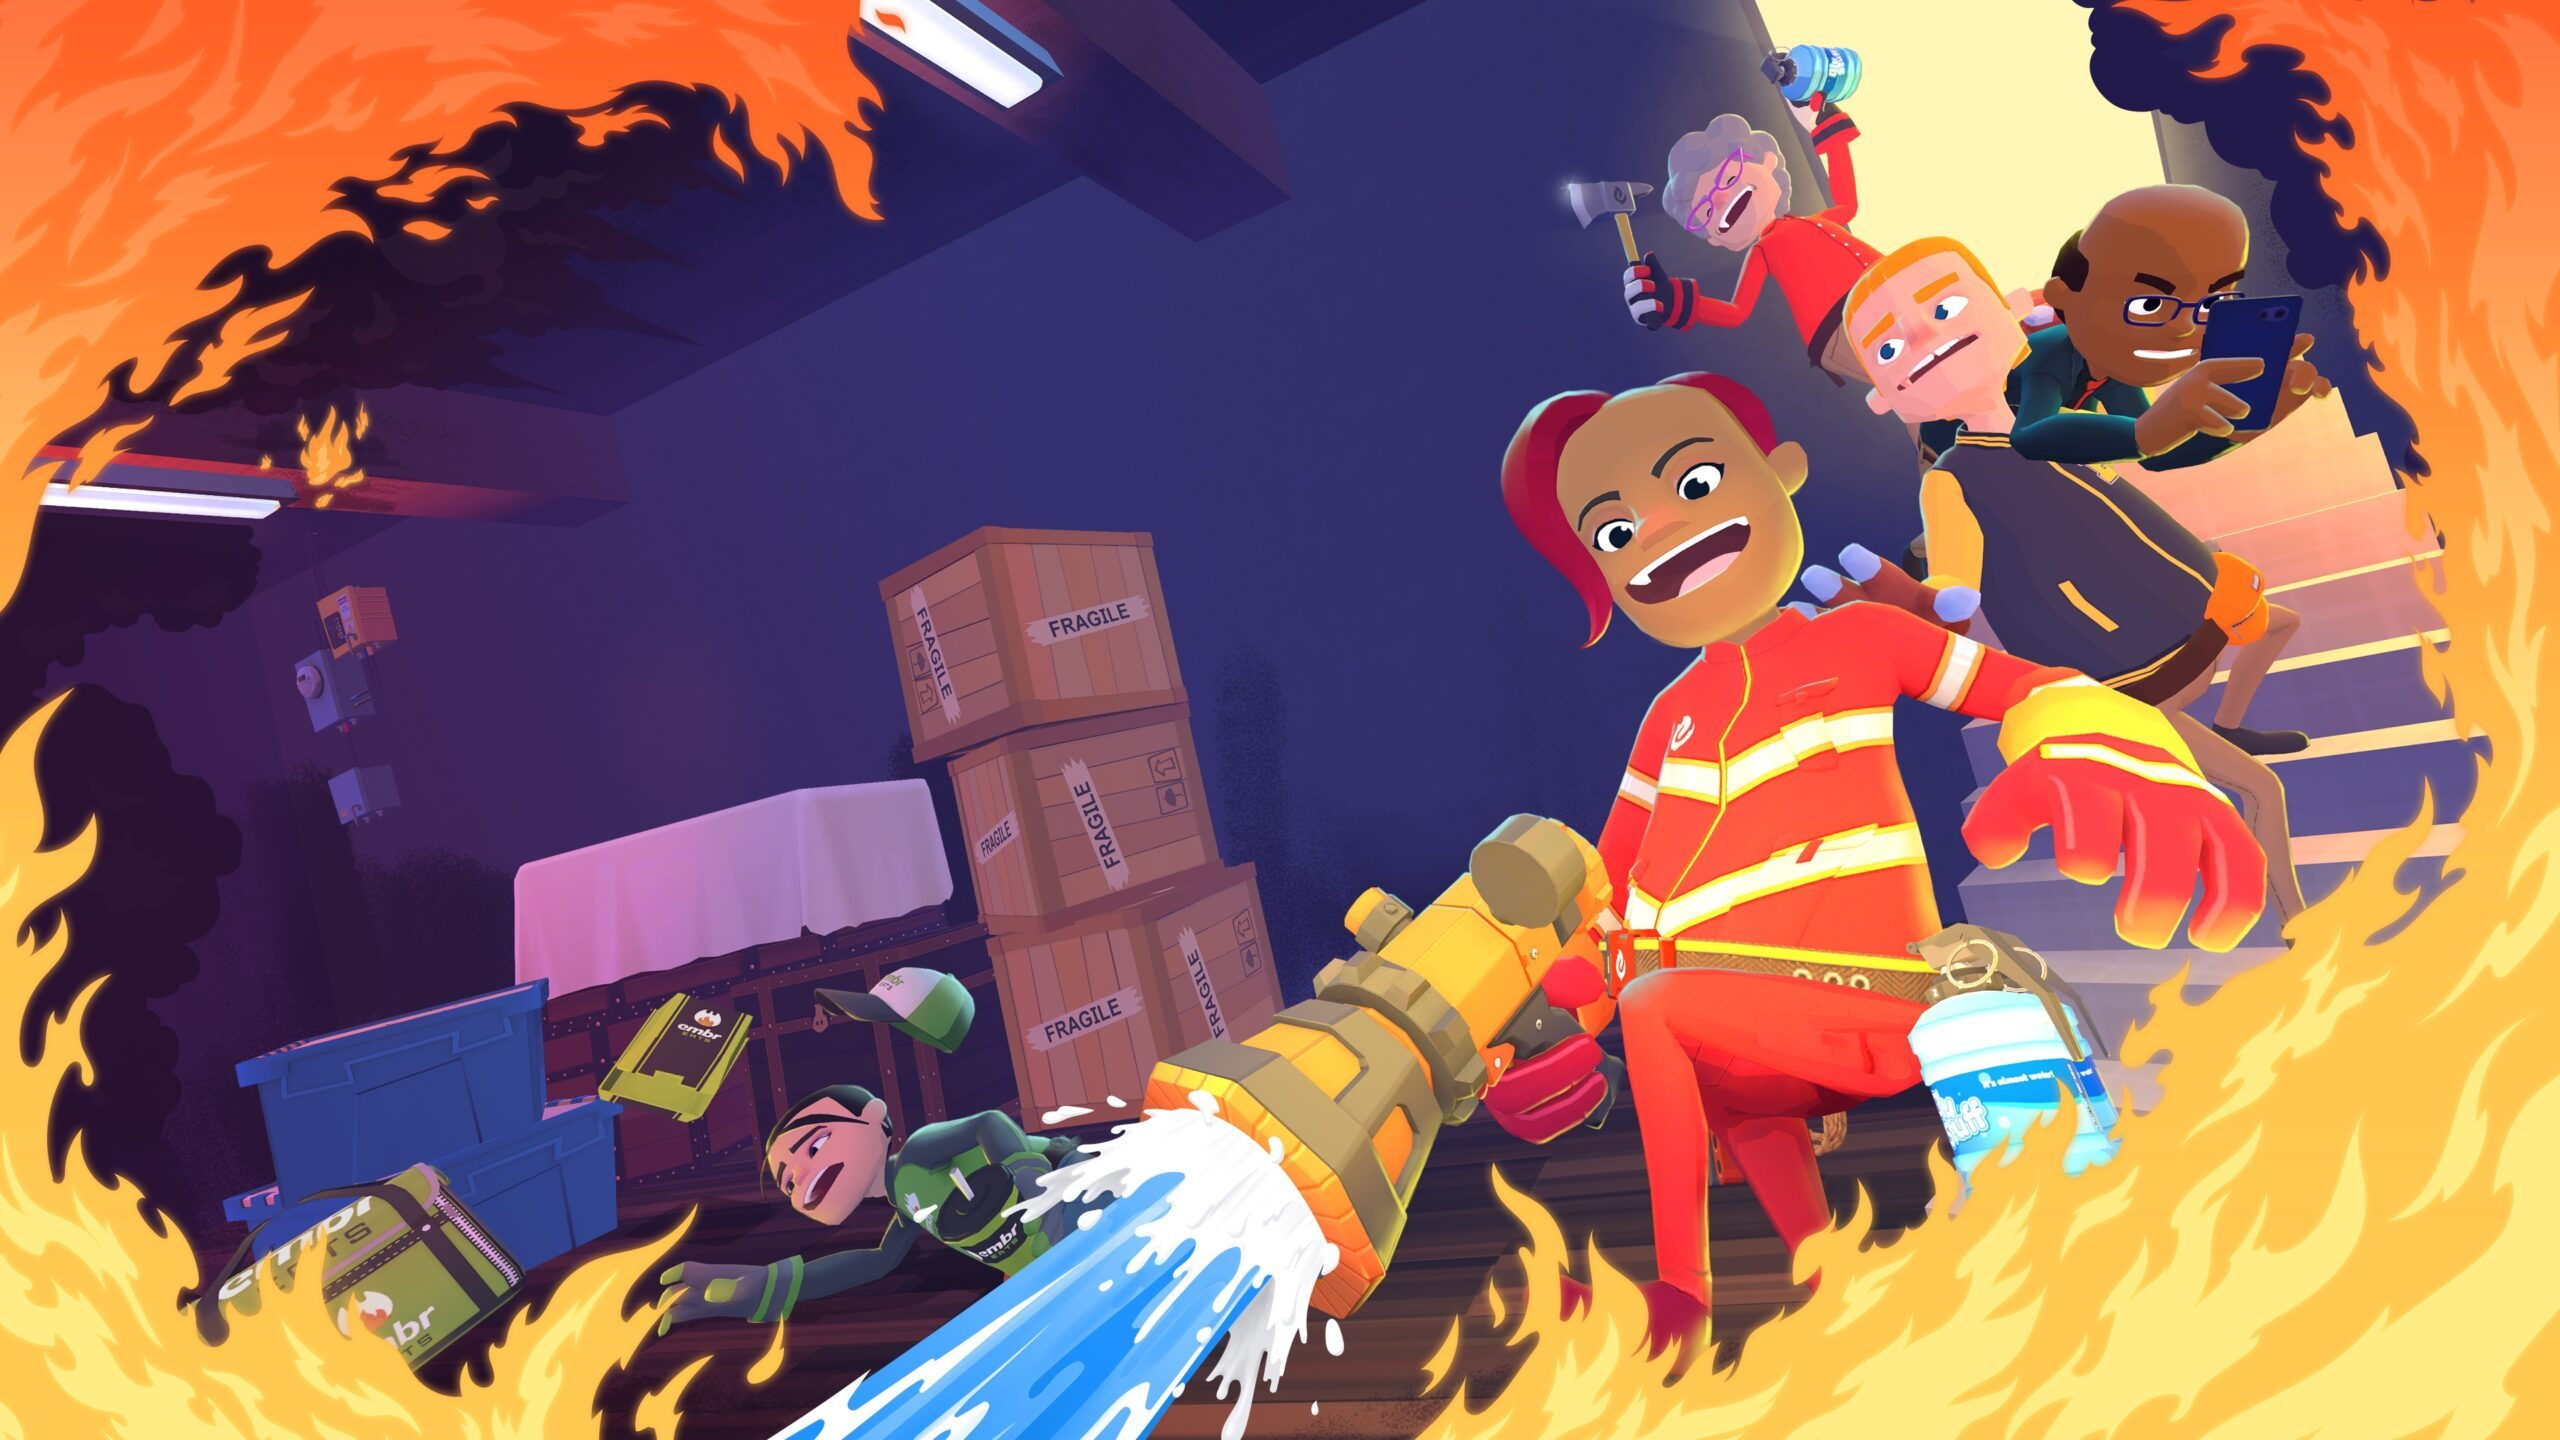 Play firefighters for hire in frantic multiplayer Embr, out tomorrow – PlayStation.Blog - World Tech news